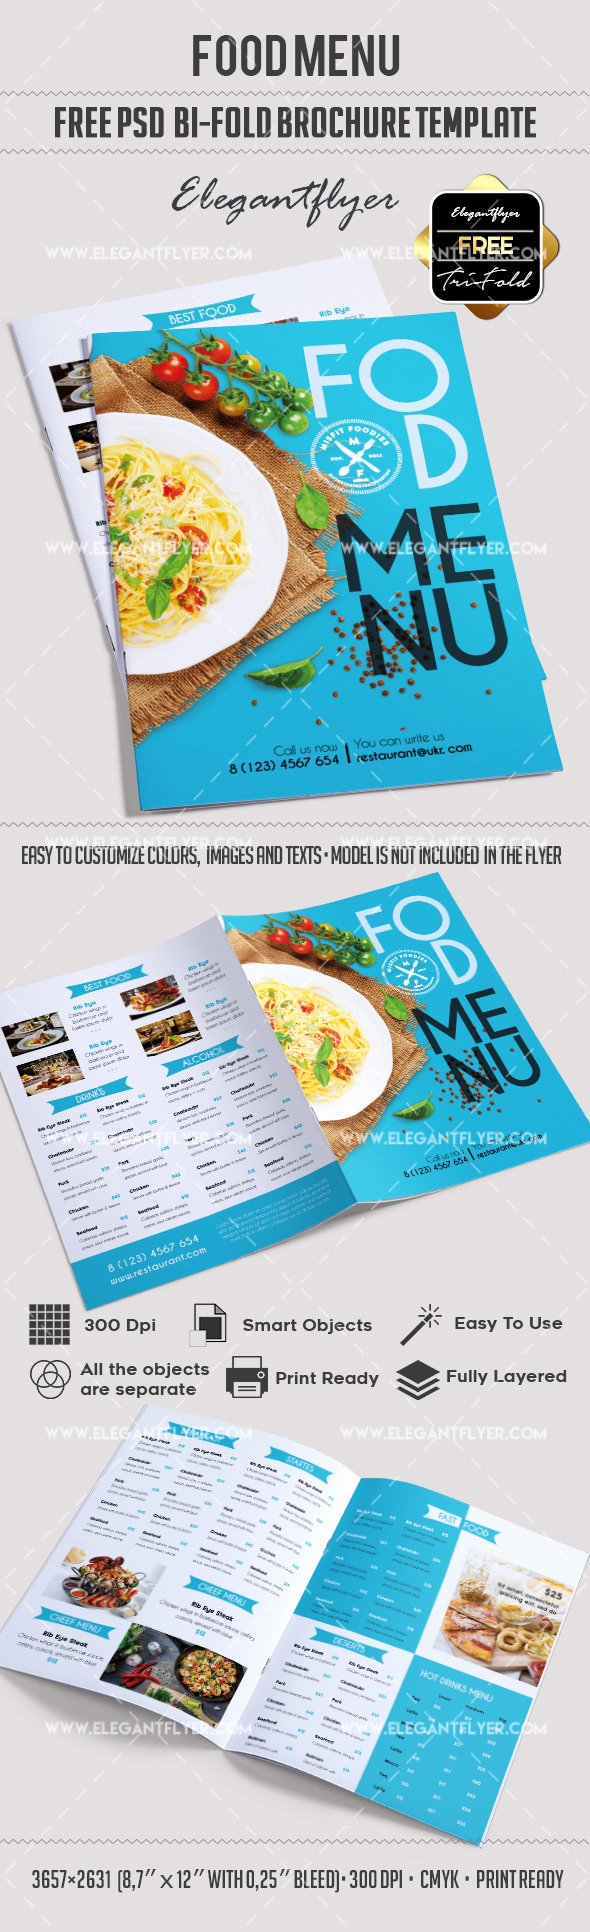 Free Bi Fold Cafe Menu Psd Brochure – by Elegantflyer